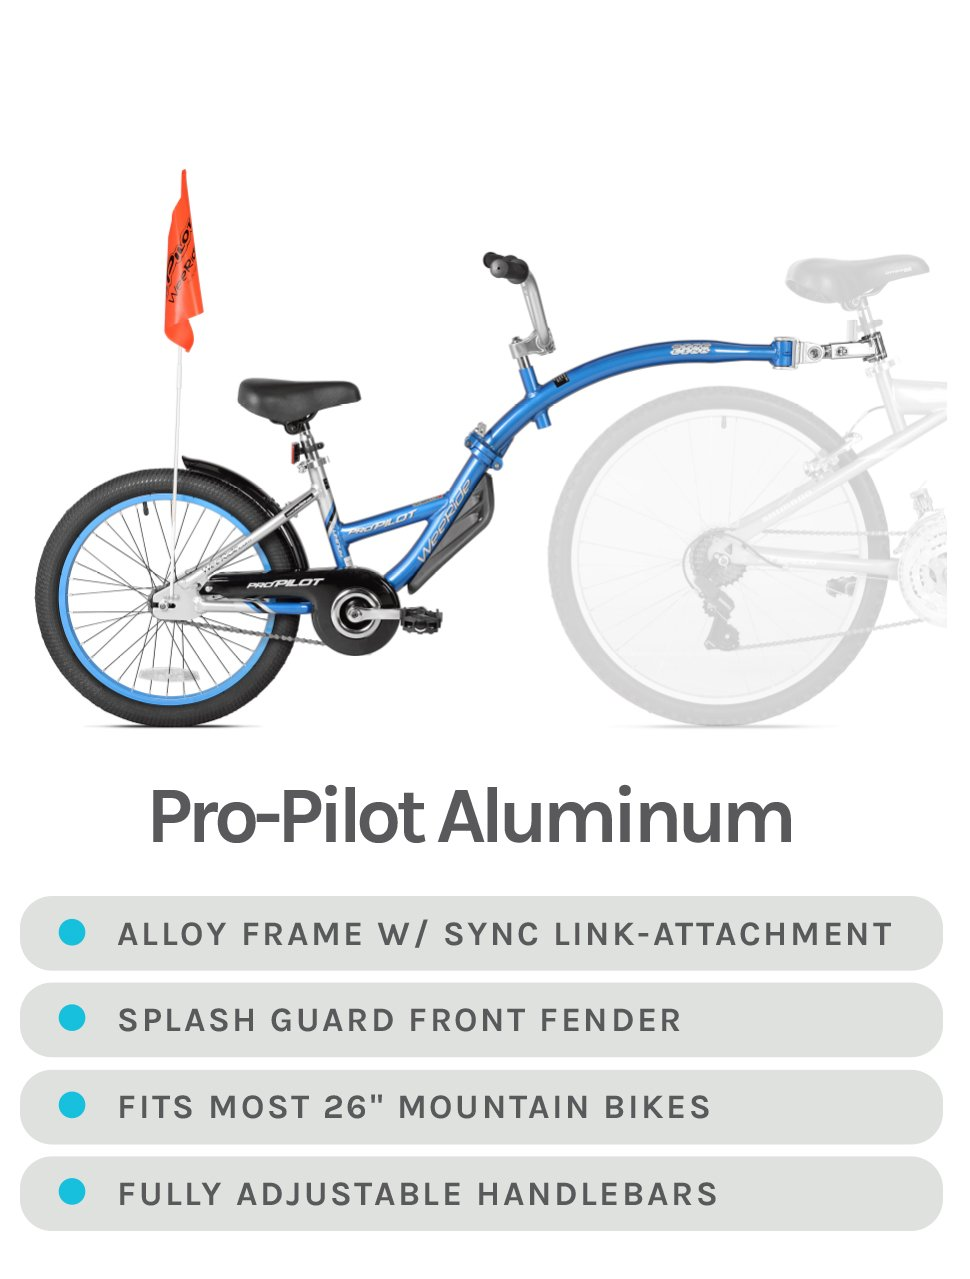 "Pro-Pilot Aluminum (w/ orange safety flag) - Cobalt Blue - Alloy Frame w/ Sync Link-Attachment, Splash Guard Front Fender, Fits most 26"" Mountain Bikes, and Fully Adjustable Handlebars"